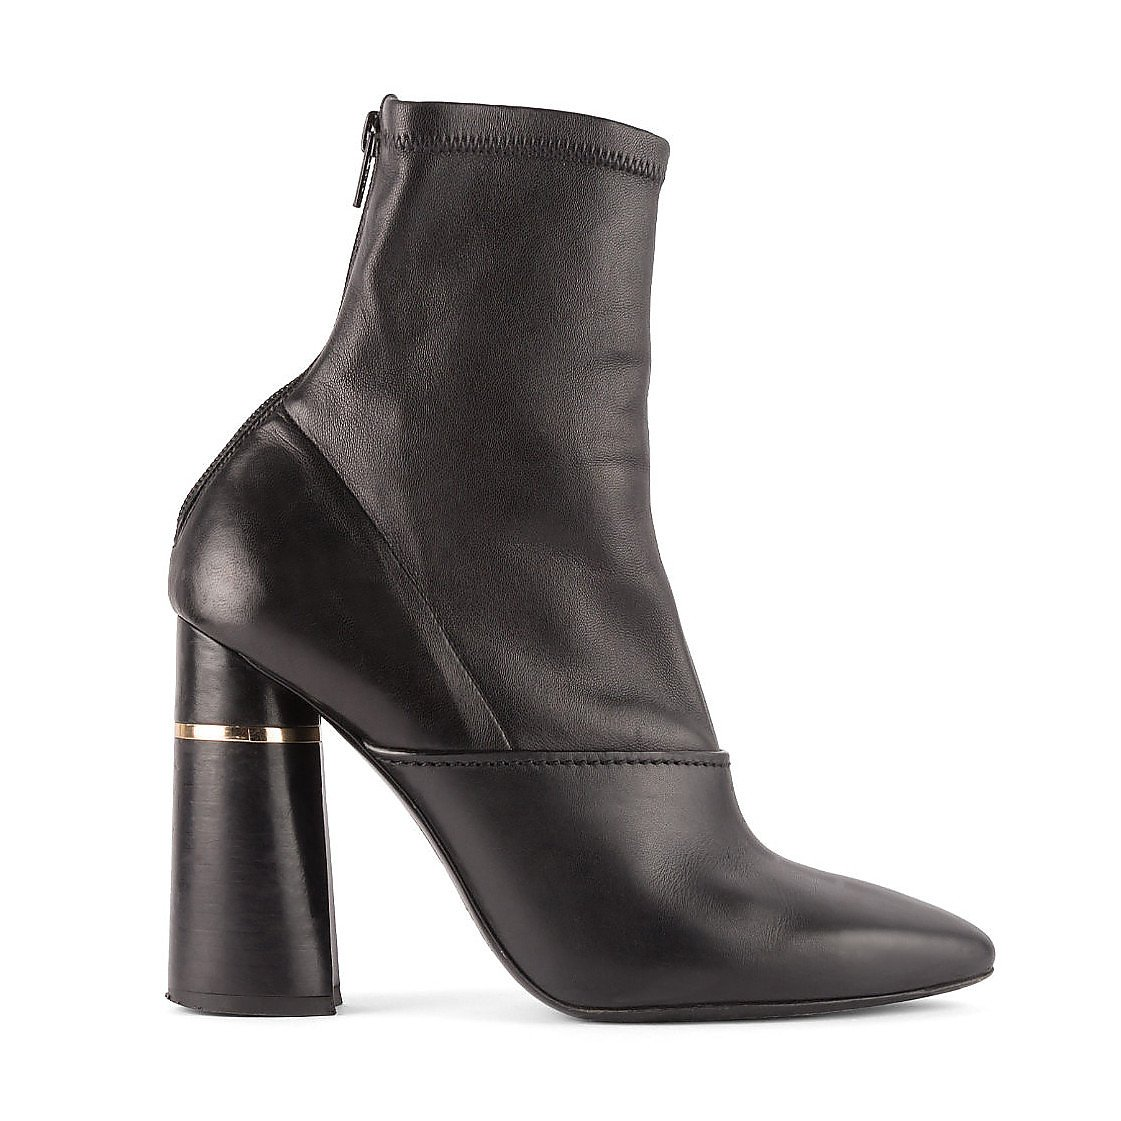 3.1 Phillip Lim Kyoto Leather Sock Boots